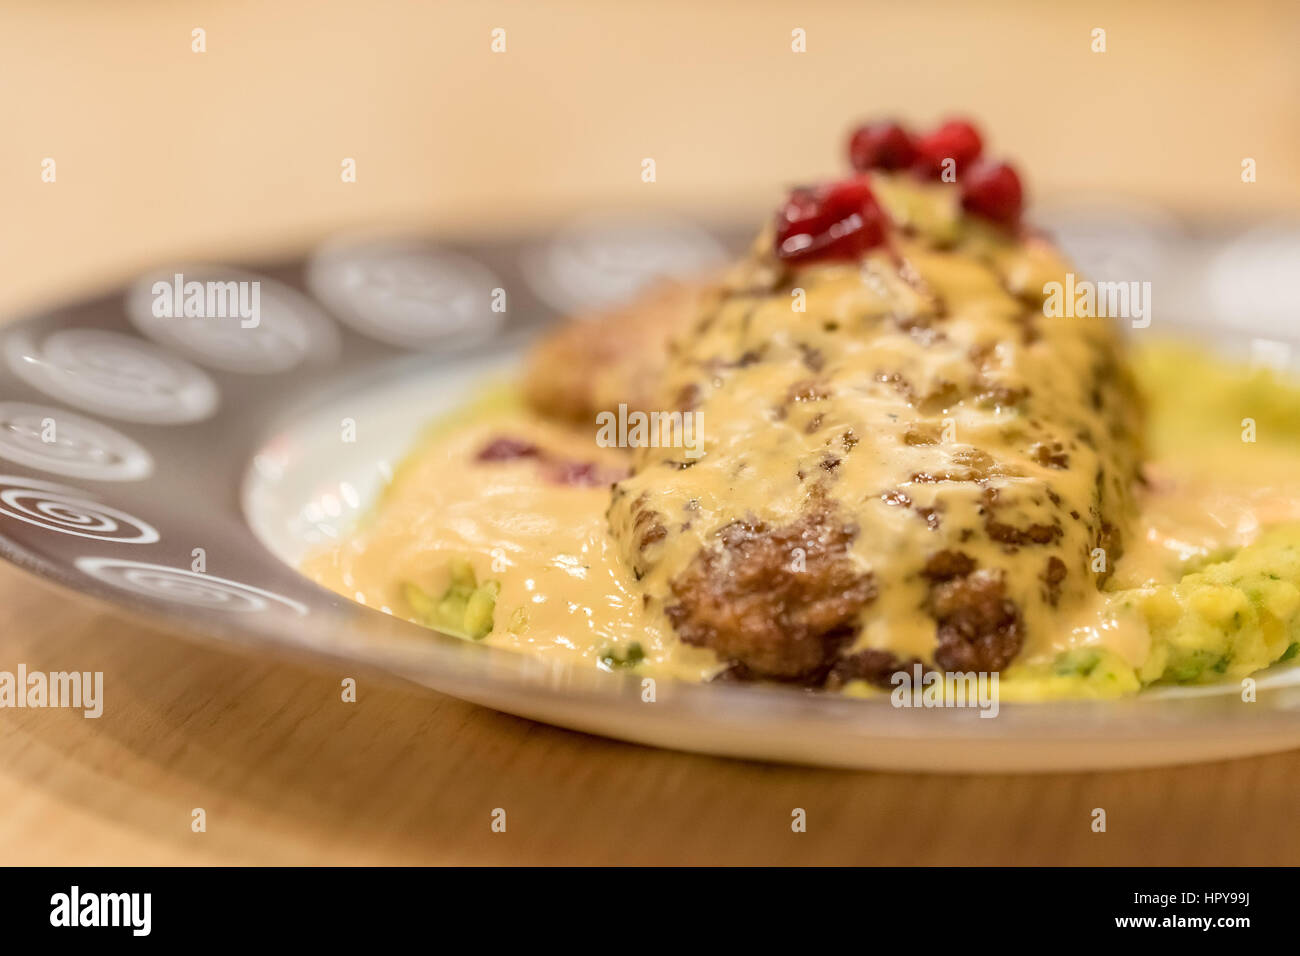 Meat patties or frikadeller in chese and mushroom sauce decorated with berries - Stock Image